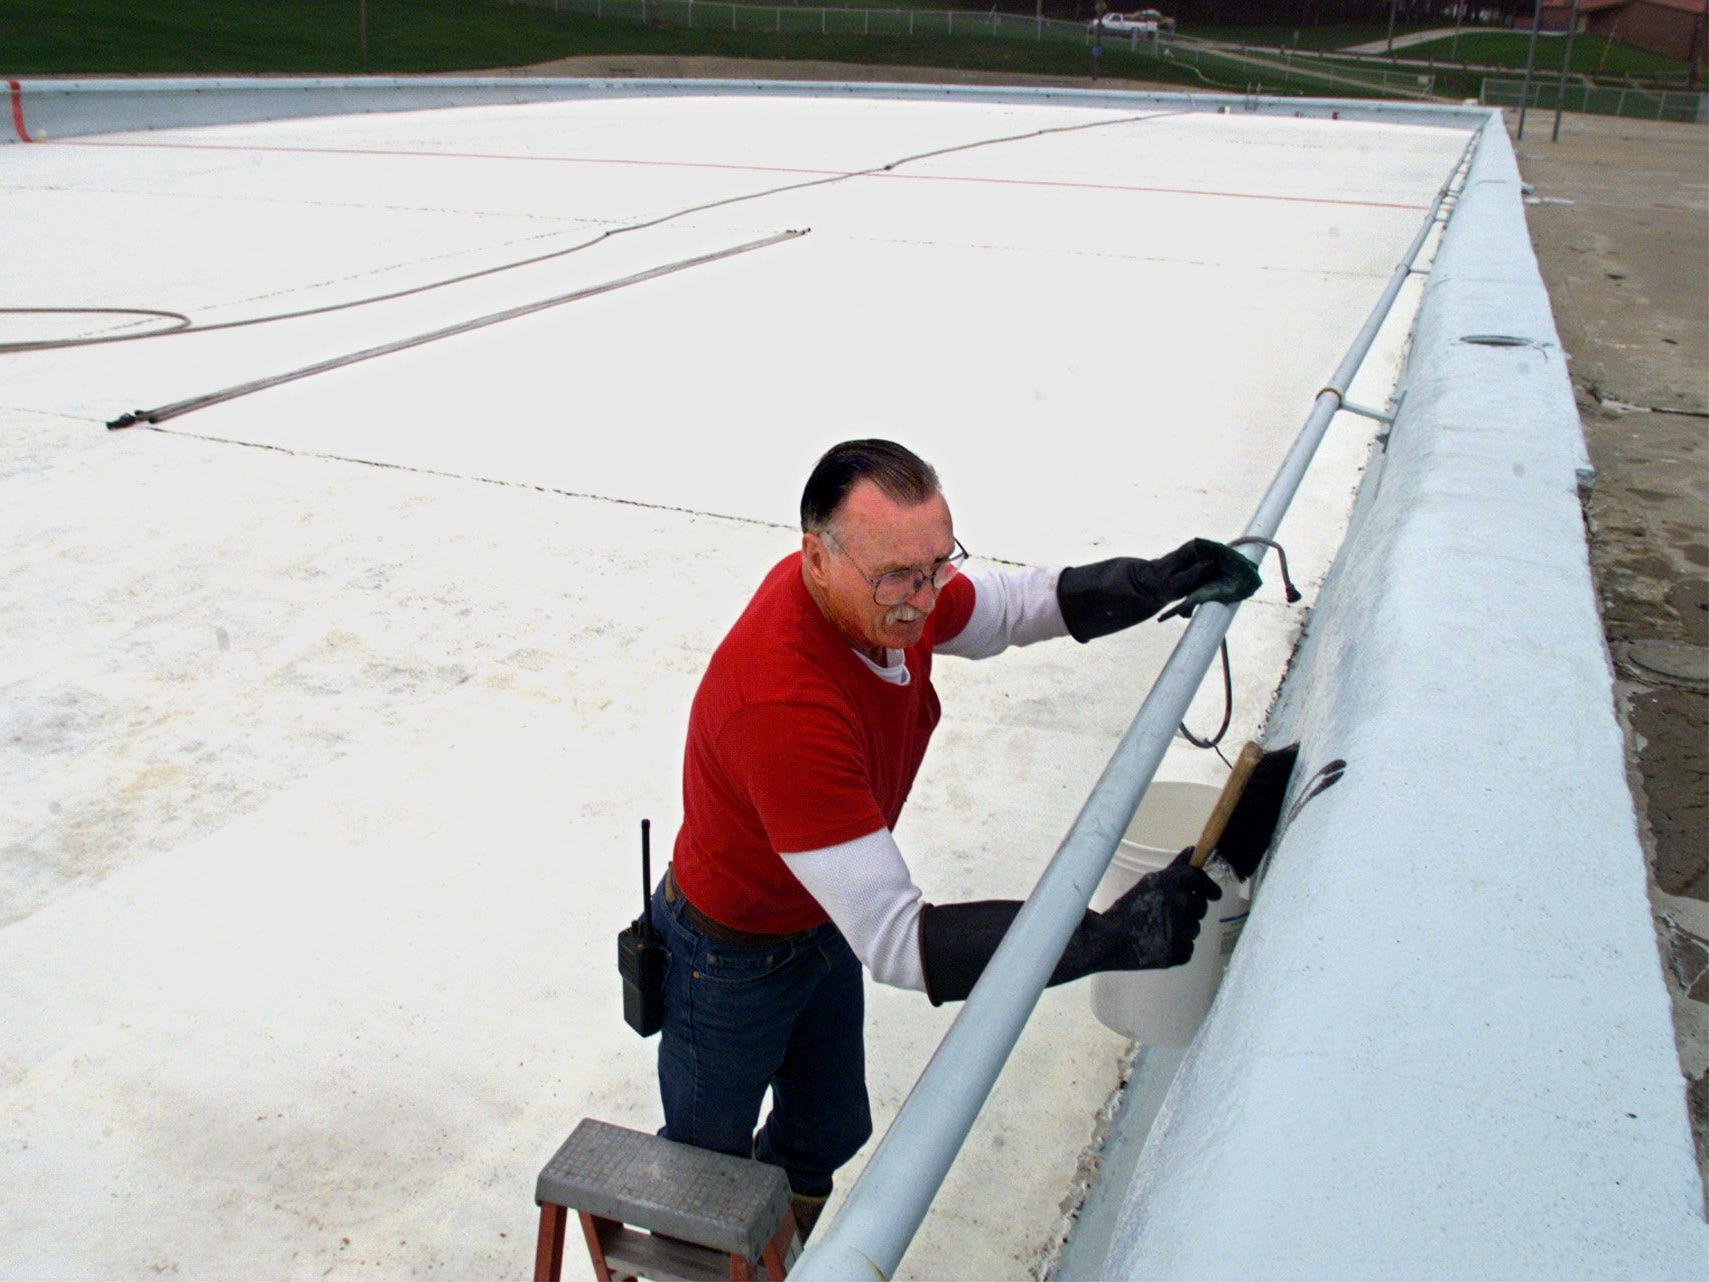 From 1999: Last summer swimmers left a ring around the 350-foot-long pool at Camp Dodge. Fred Sheeks was working to scrub the pool walls before it was filled with nearly 3 million gallons for the 1999 swim season.